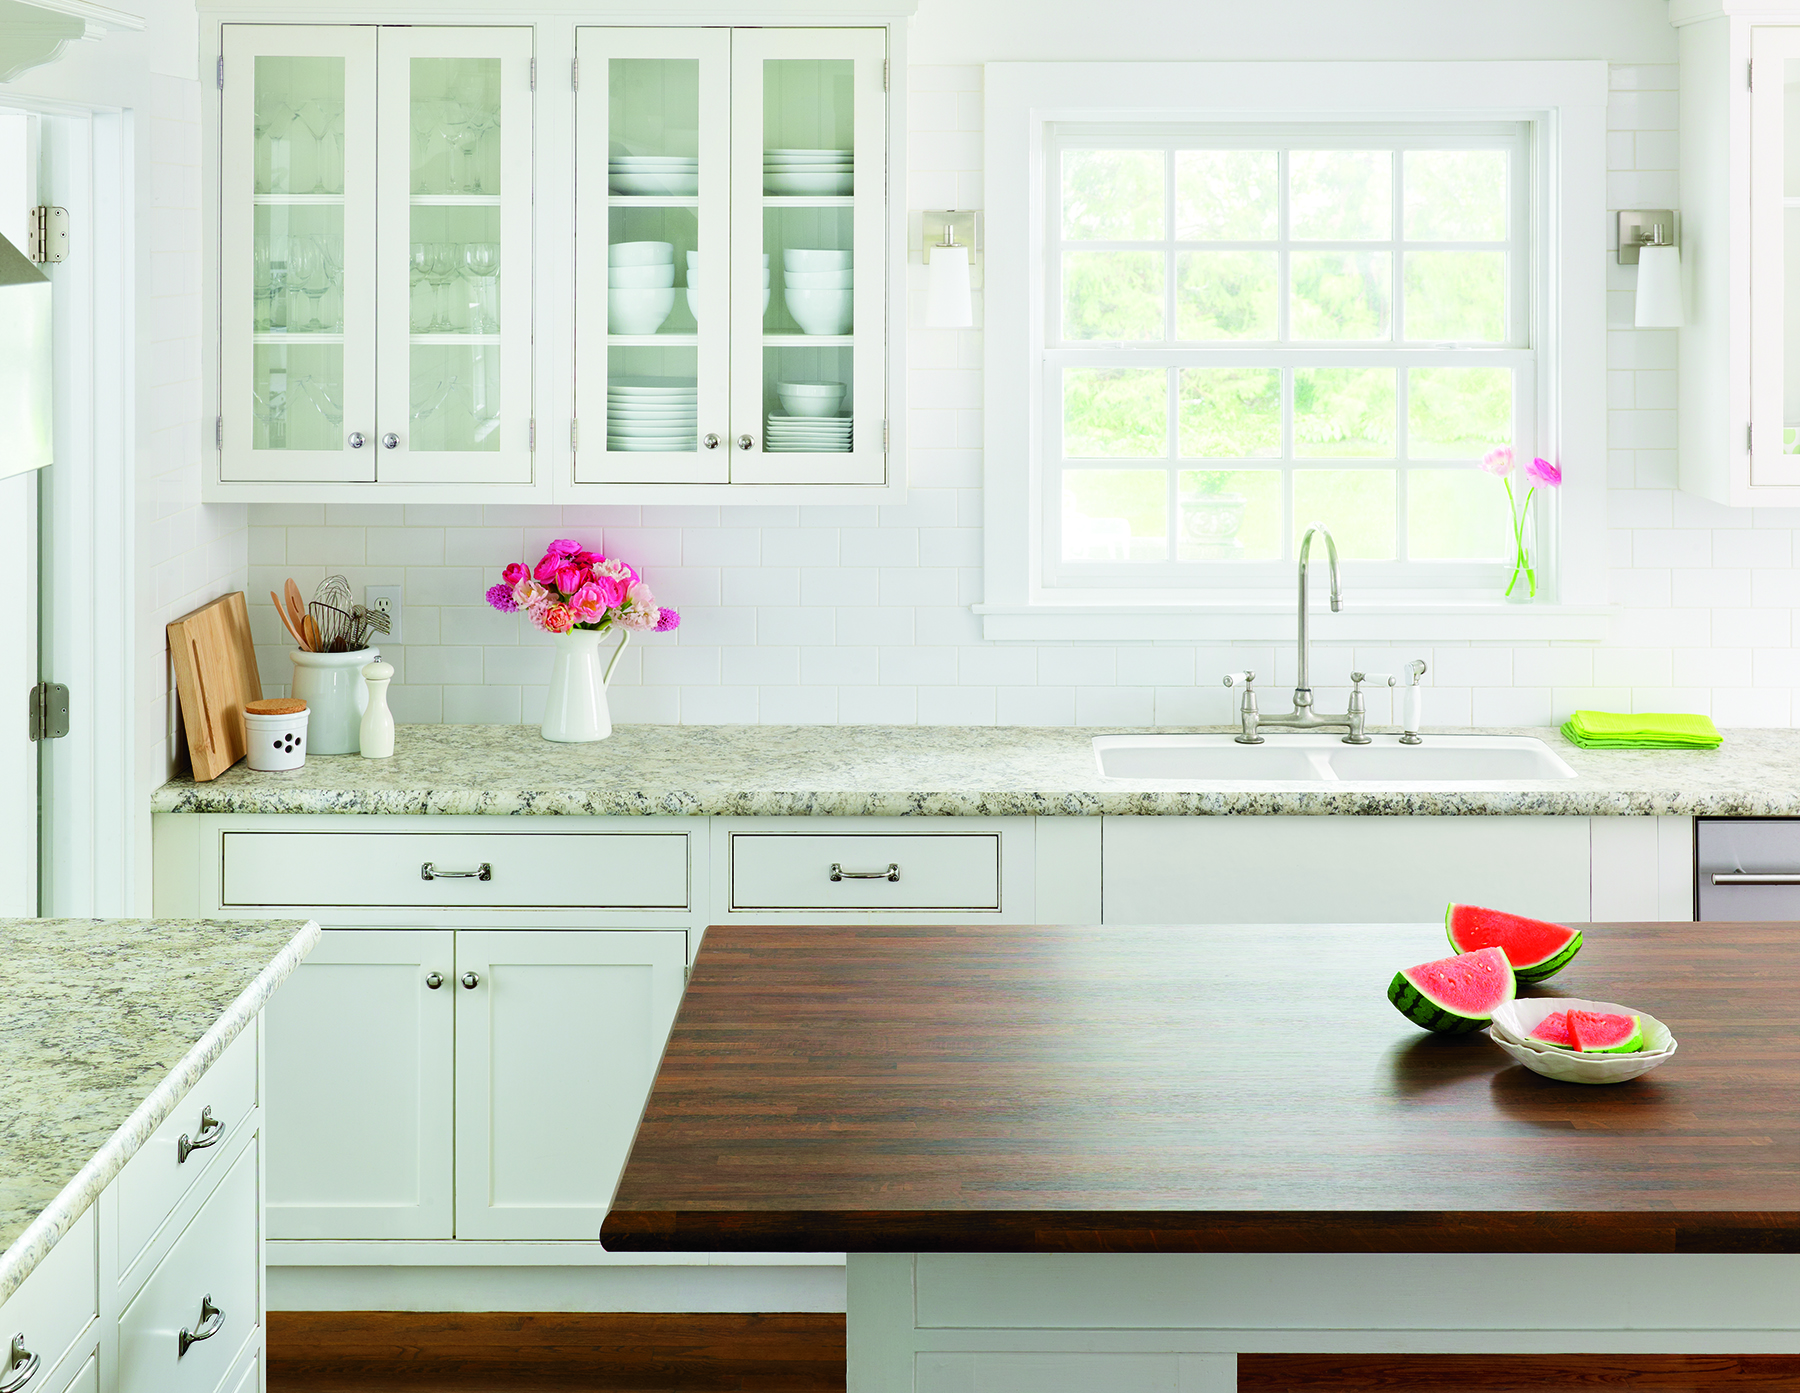 How Much Is A Custom Laminate Countertop